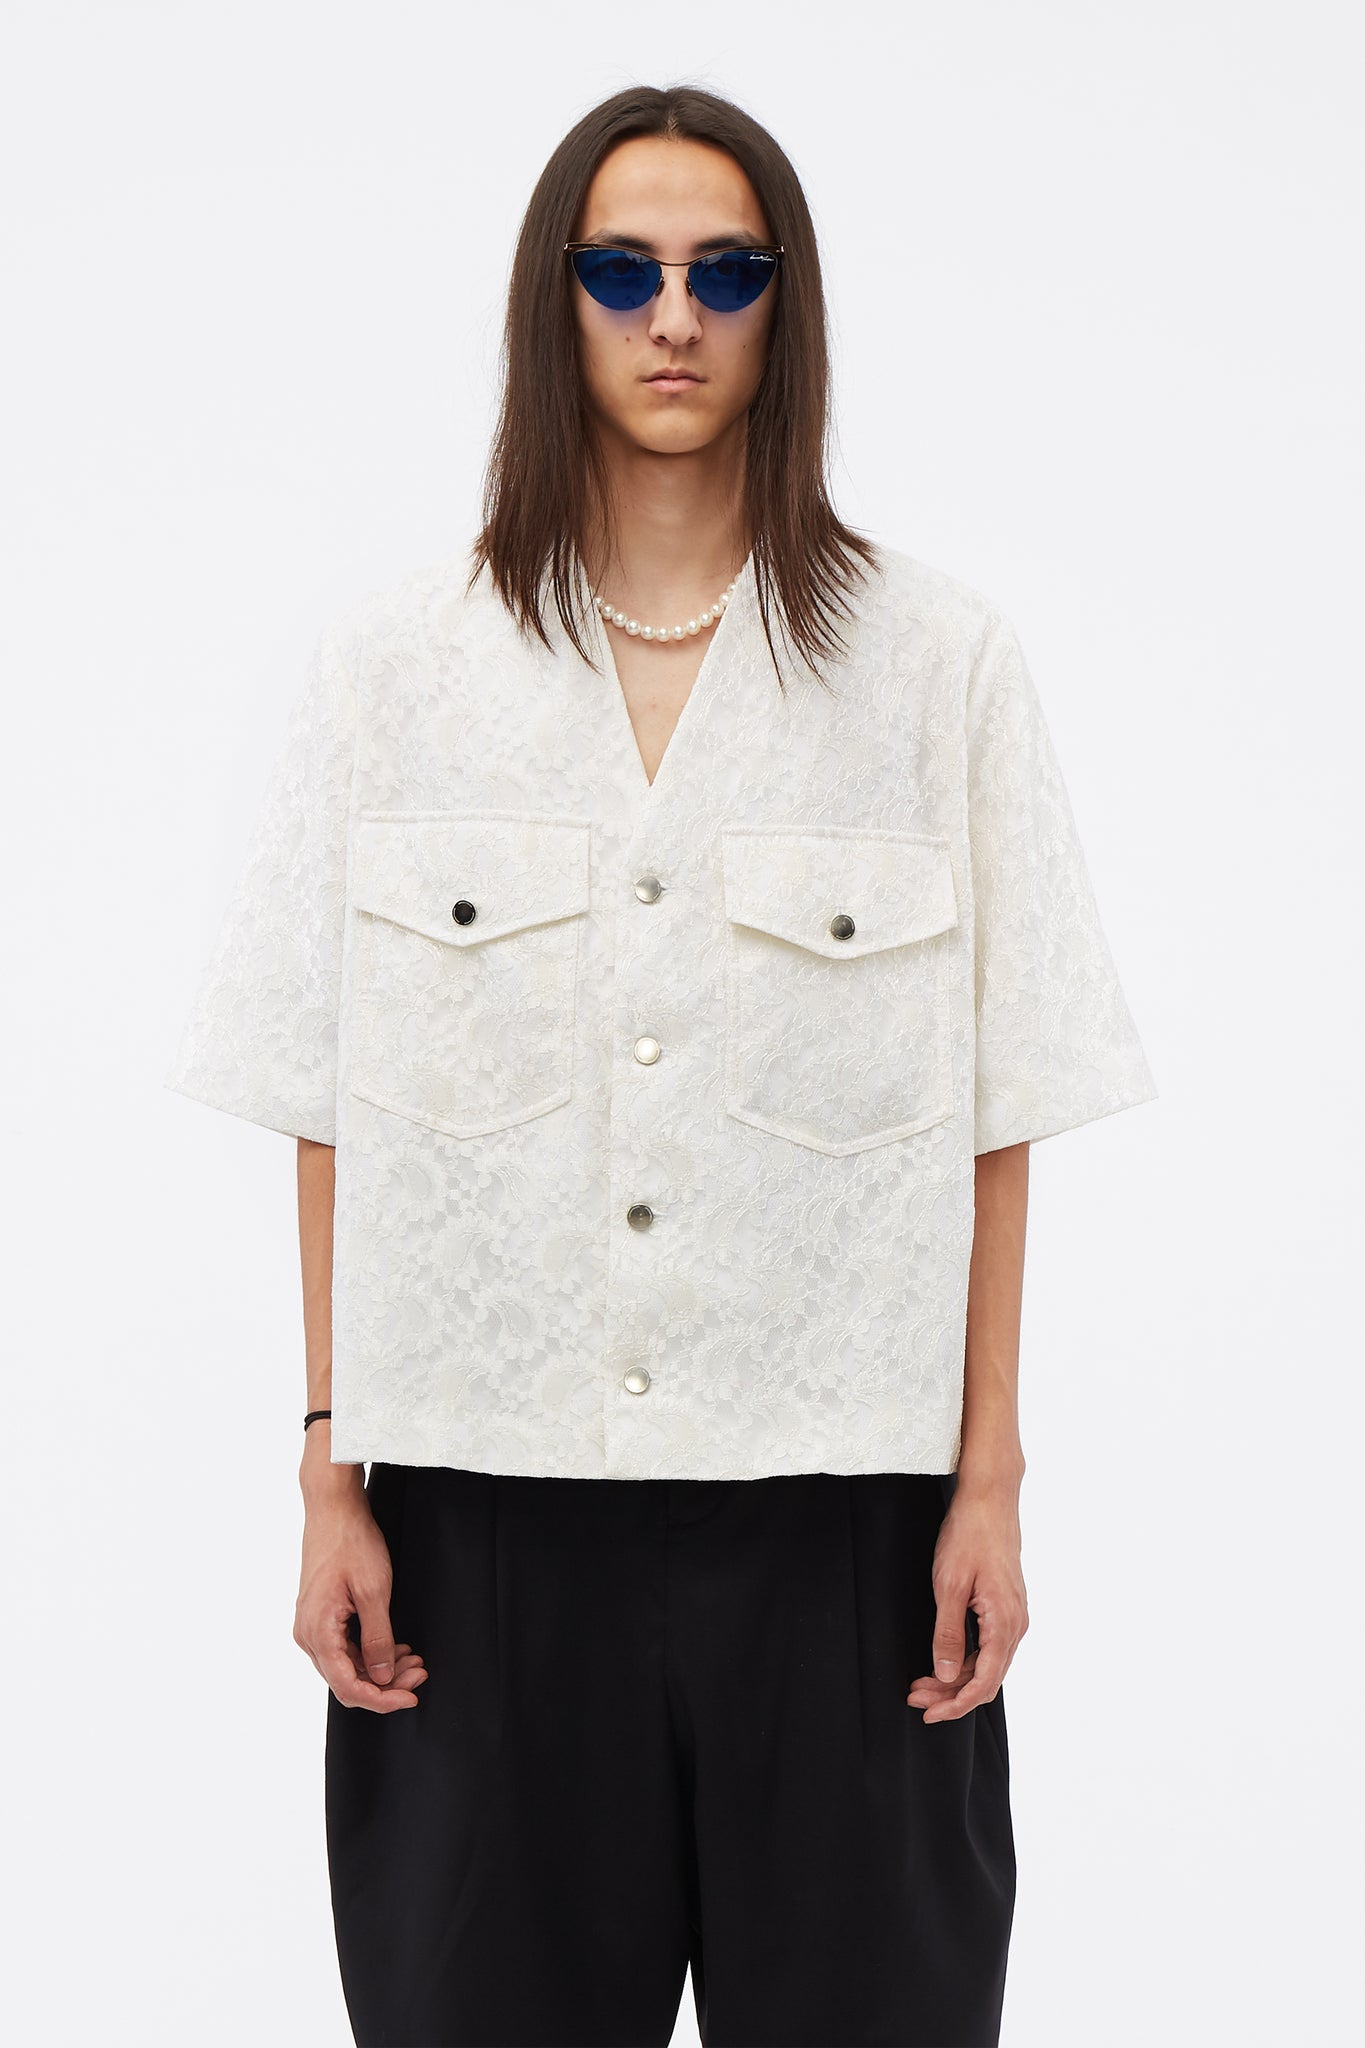 Cardigan SS Pocket Shirt Angel White Lace